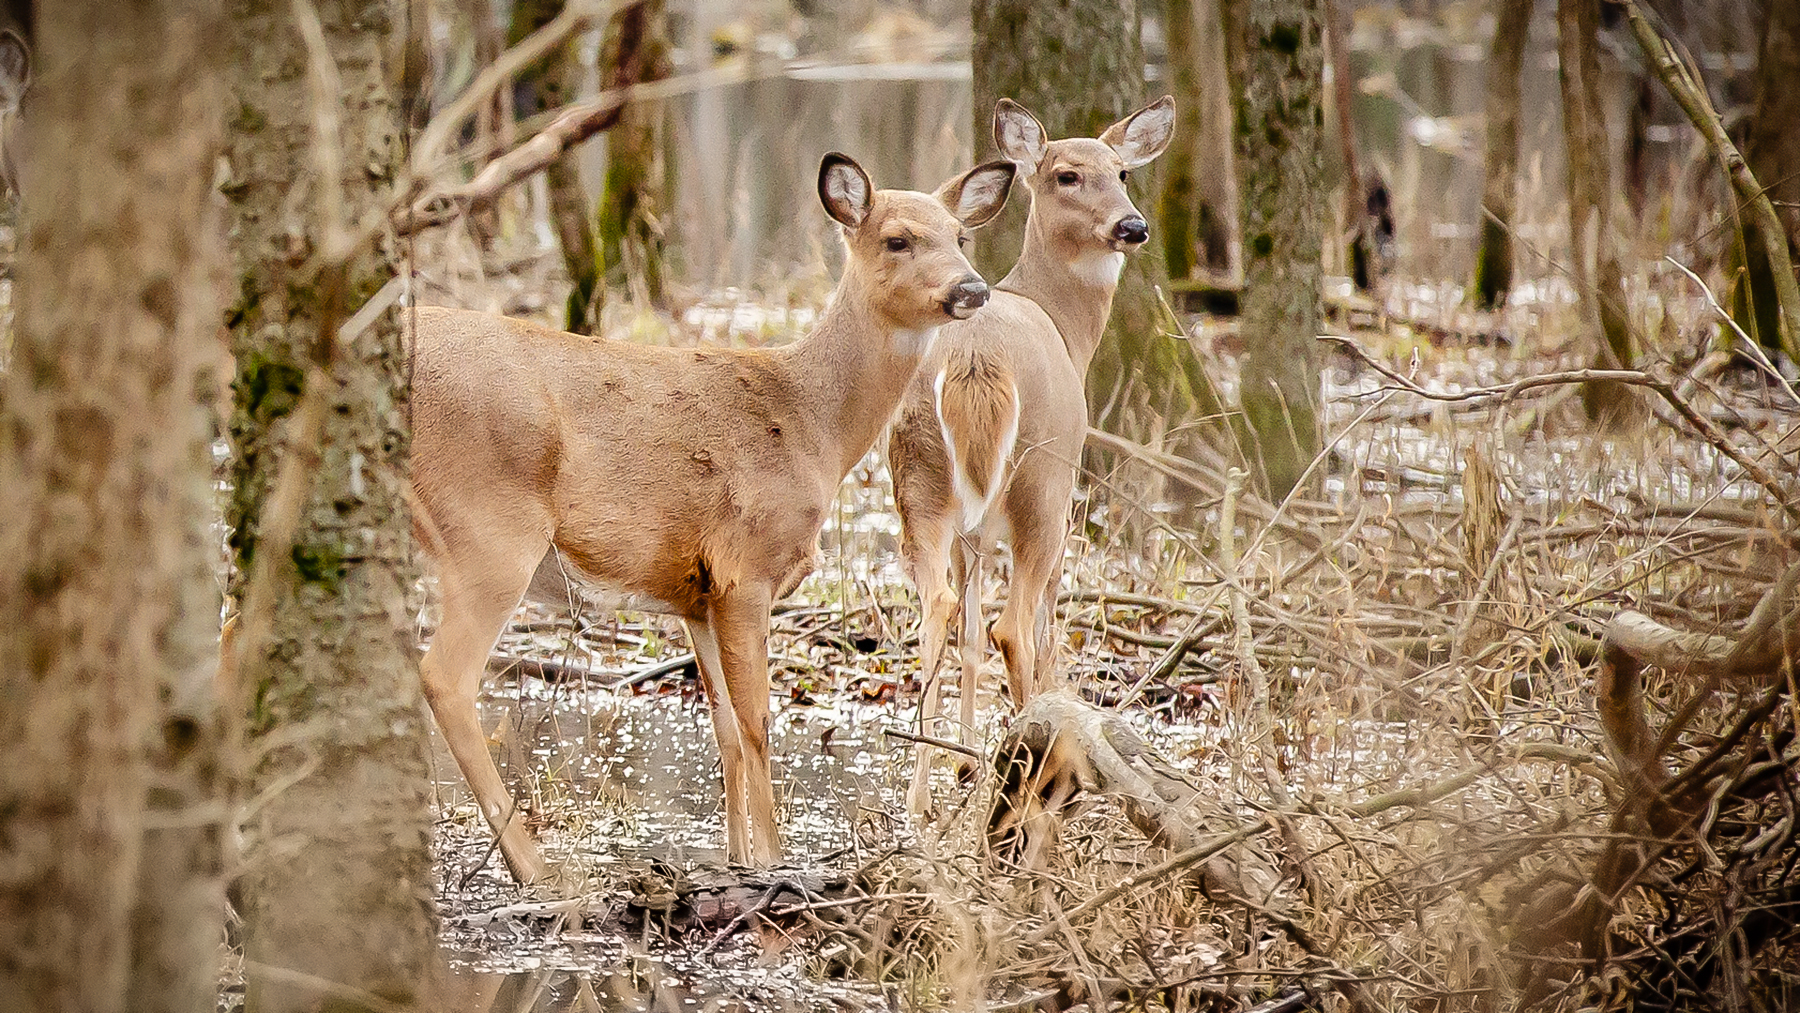 two deer in a woodland setting. Photo by L. B. Stauffer